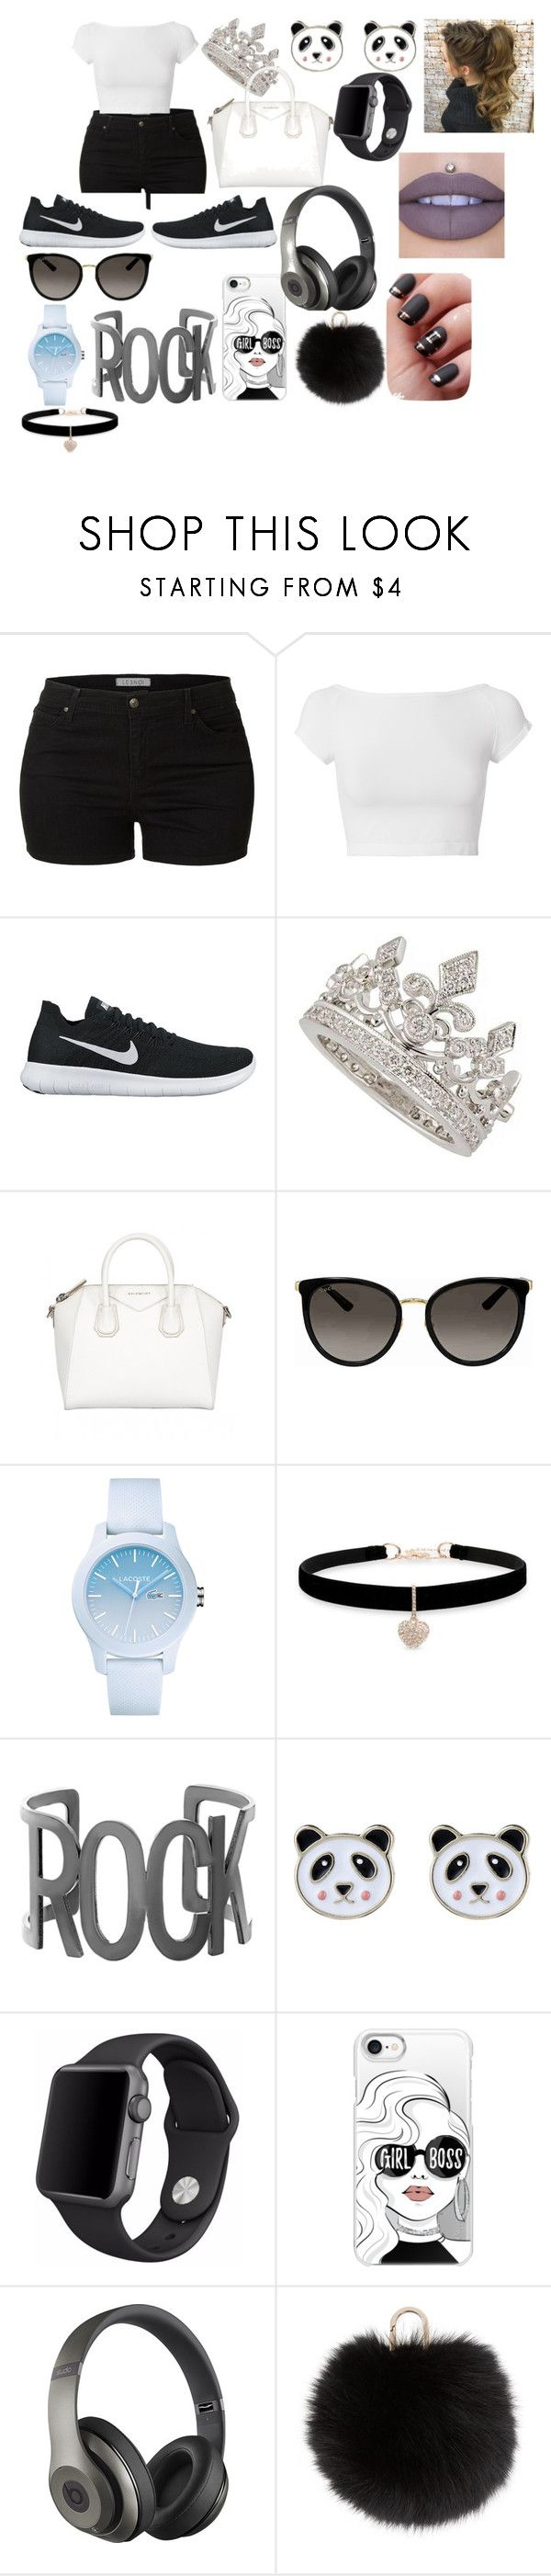 """""""Untitled #22"""" by monicaparker-1 on Polyvore featuring LE3NO, Helmut Lang, NIKE, Garrard, Gucci, Lacoste, Betsey Johnson, Steve Madden, Accessorize and Apple"""